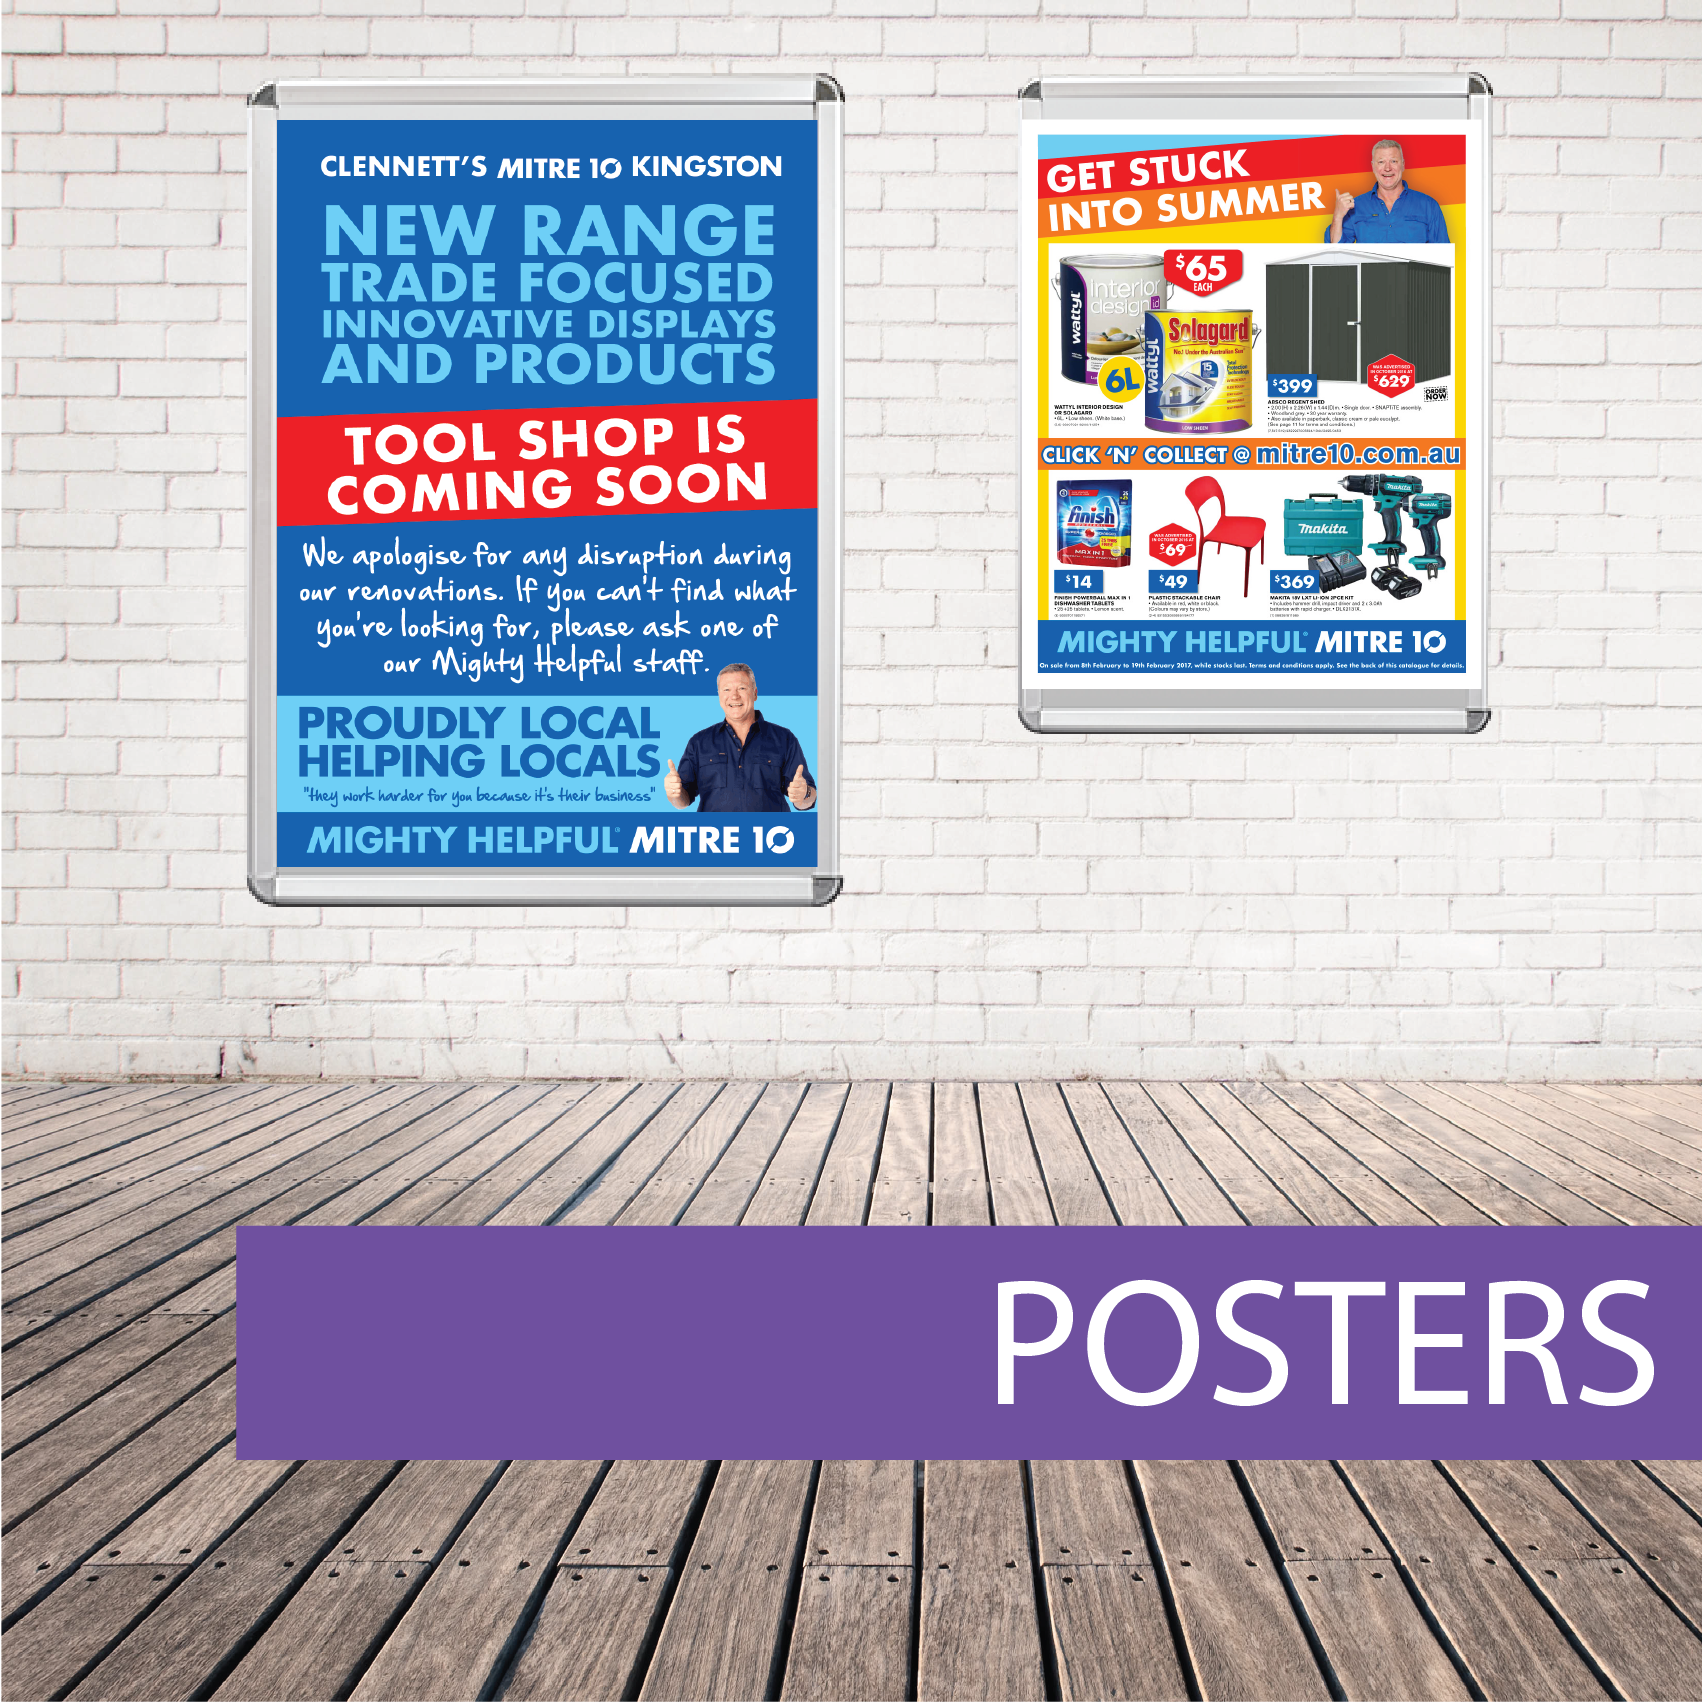 Wall posters Mitre 10